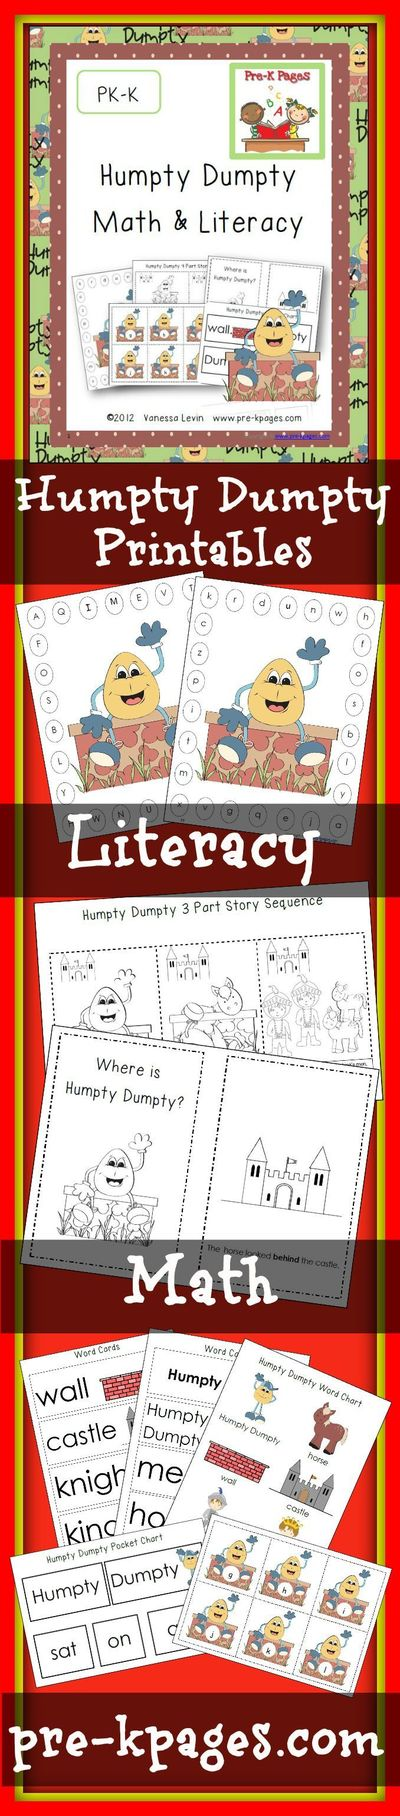 Humpty Dumpty nursery rhyme lesson plans for preschool, pre-k, and kindergarten Humpty Dumpty Books Humpty Dumpty Literacy Activities Alphabet Clothespin Activi